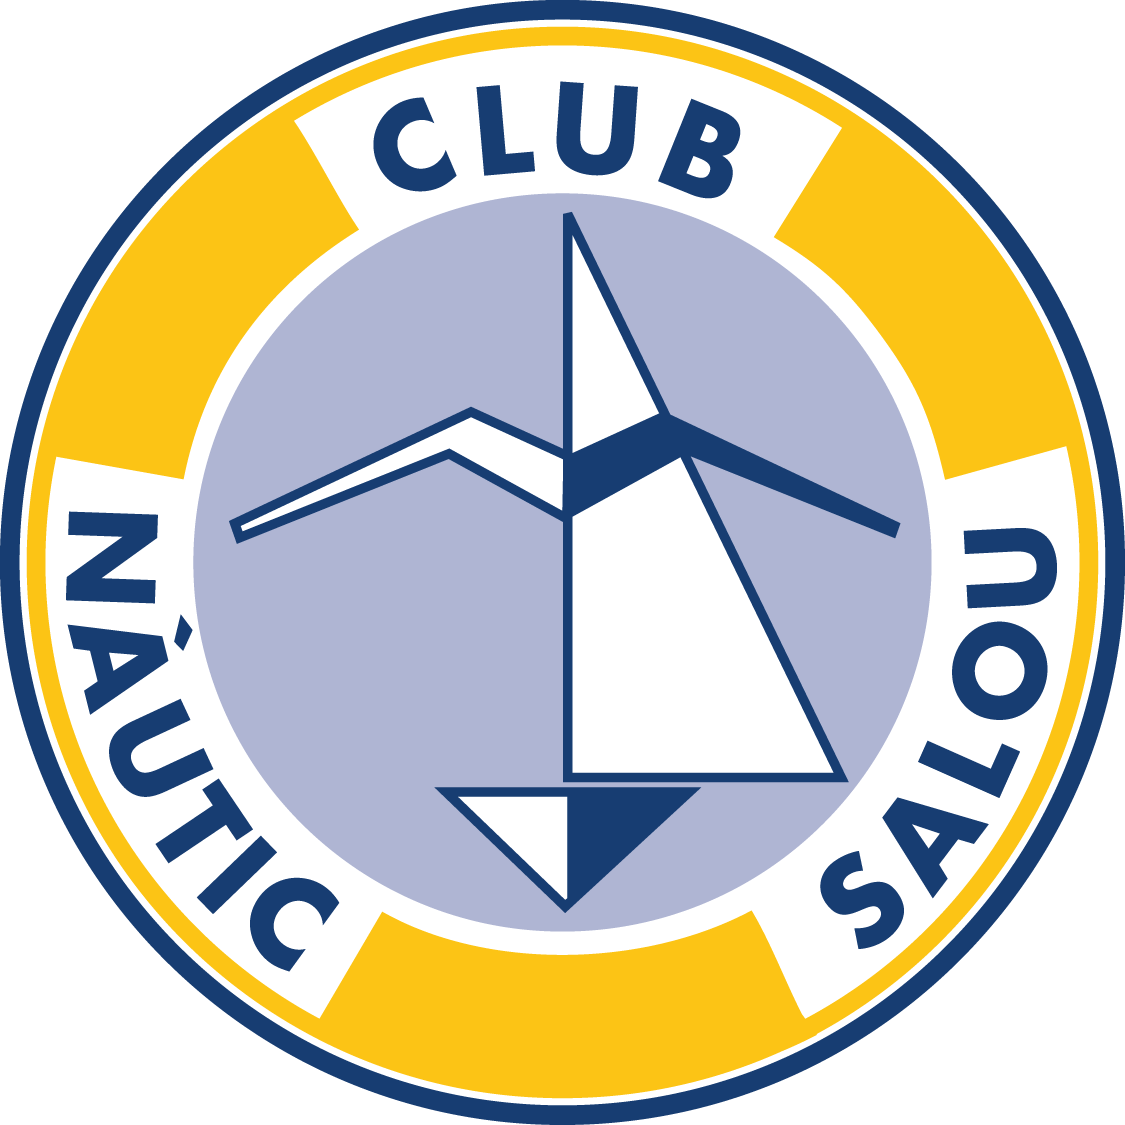 Club Nàutic Salou